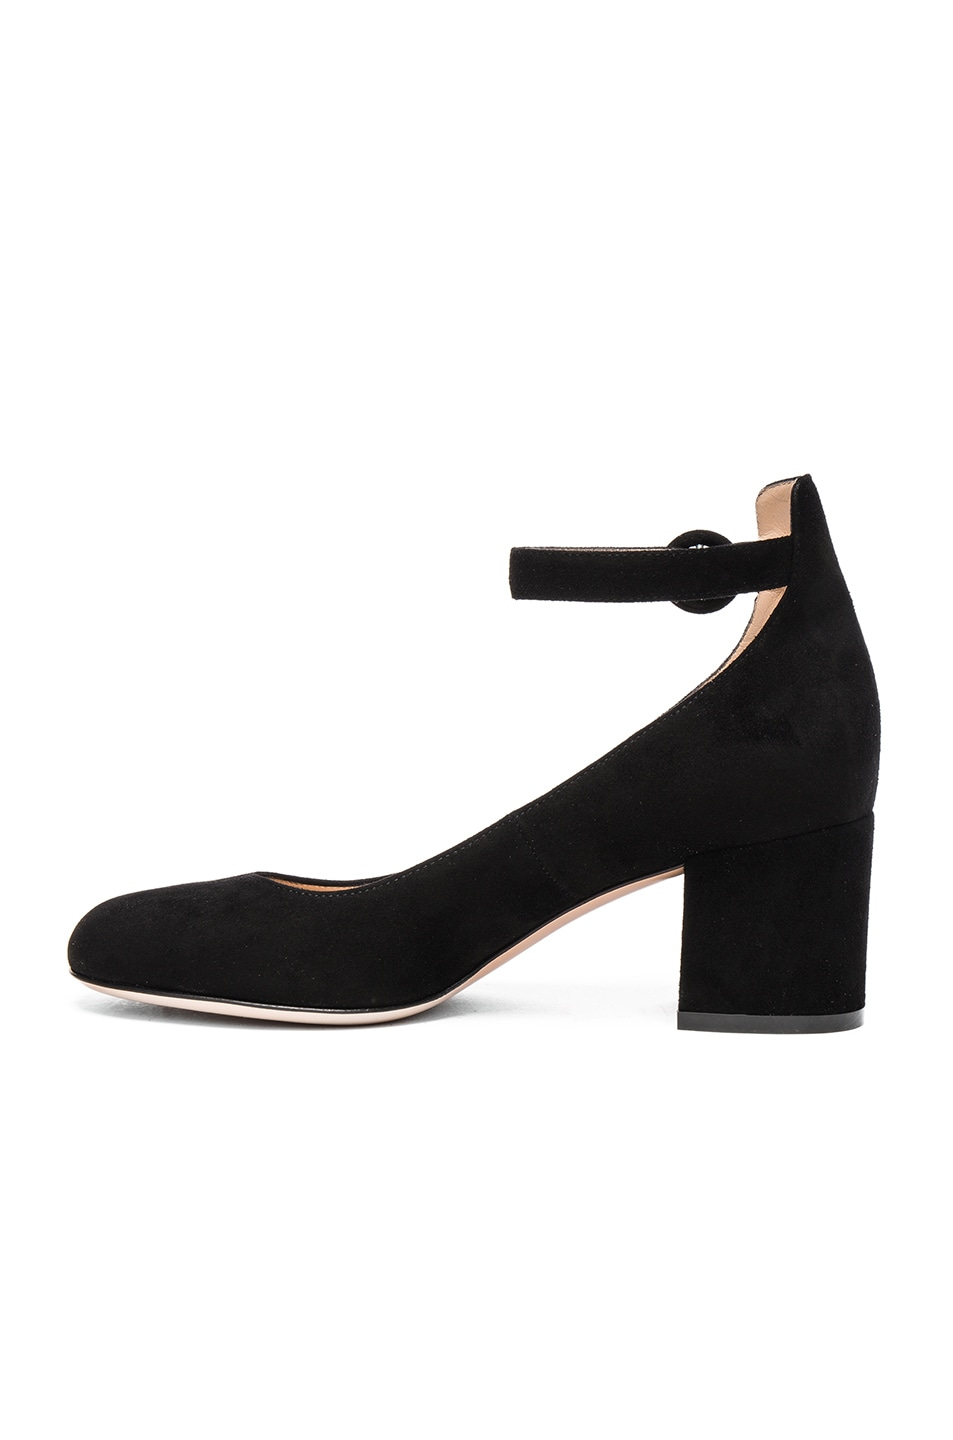 Image 5 of Gianvito Rossi Suede Ankle Strap Flats in Black